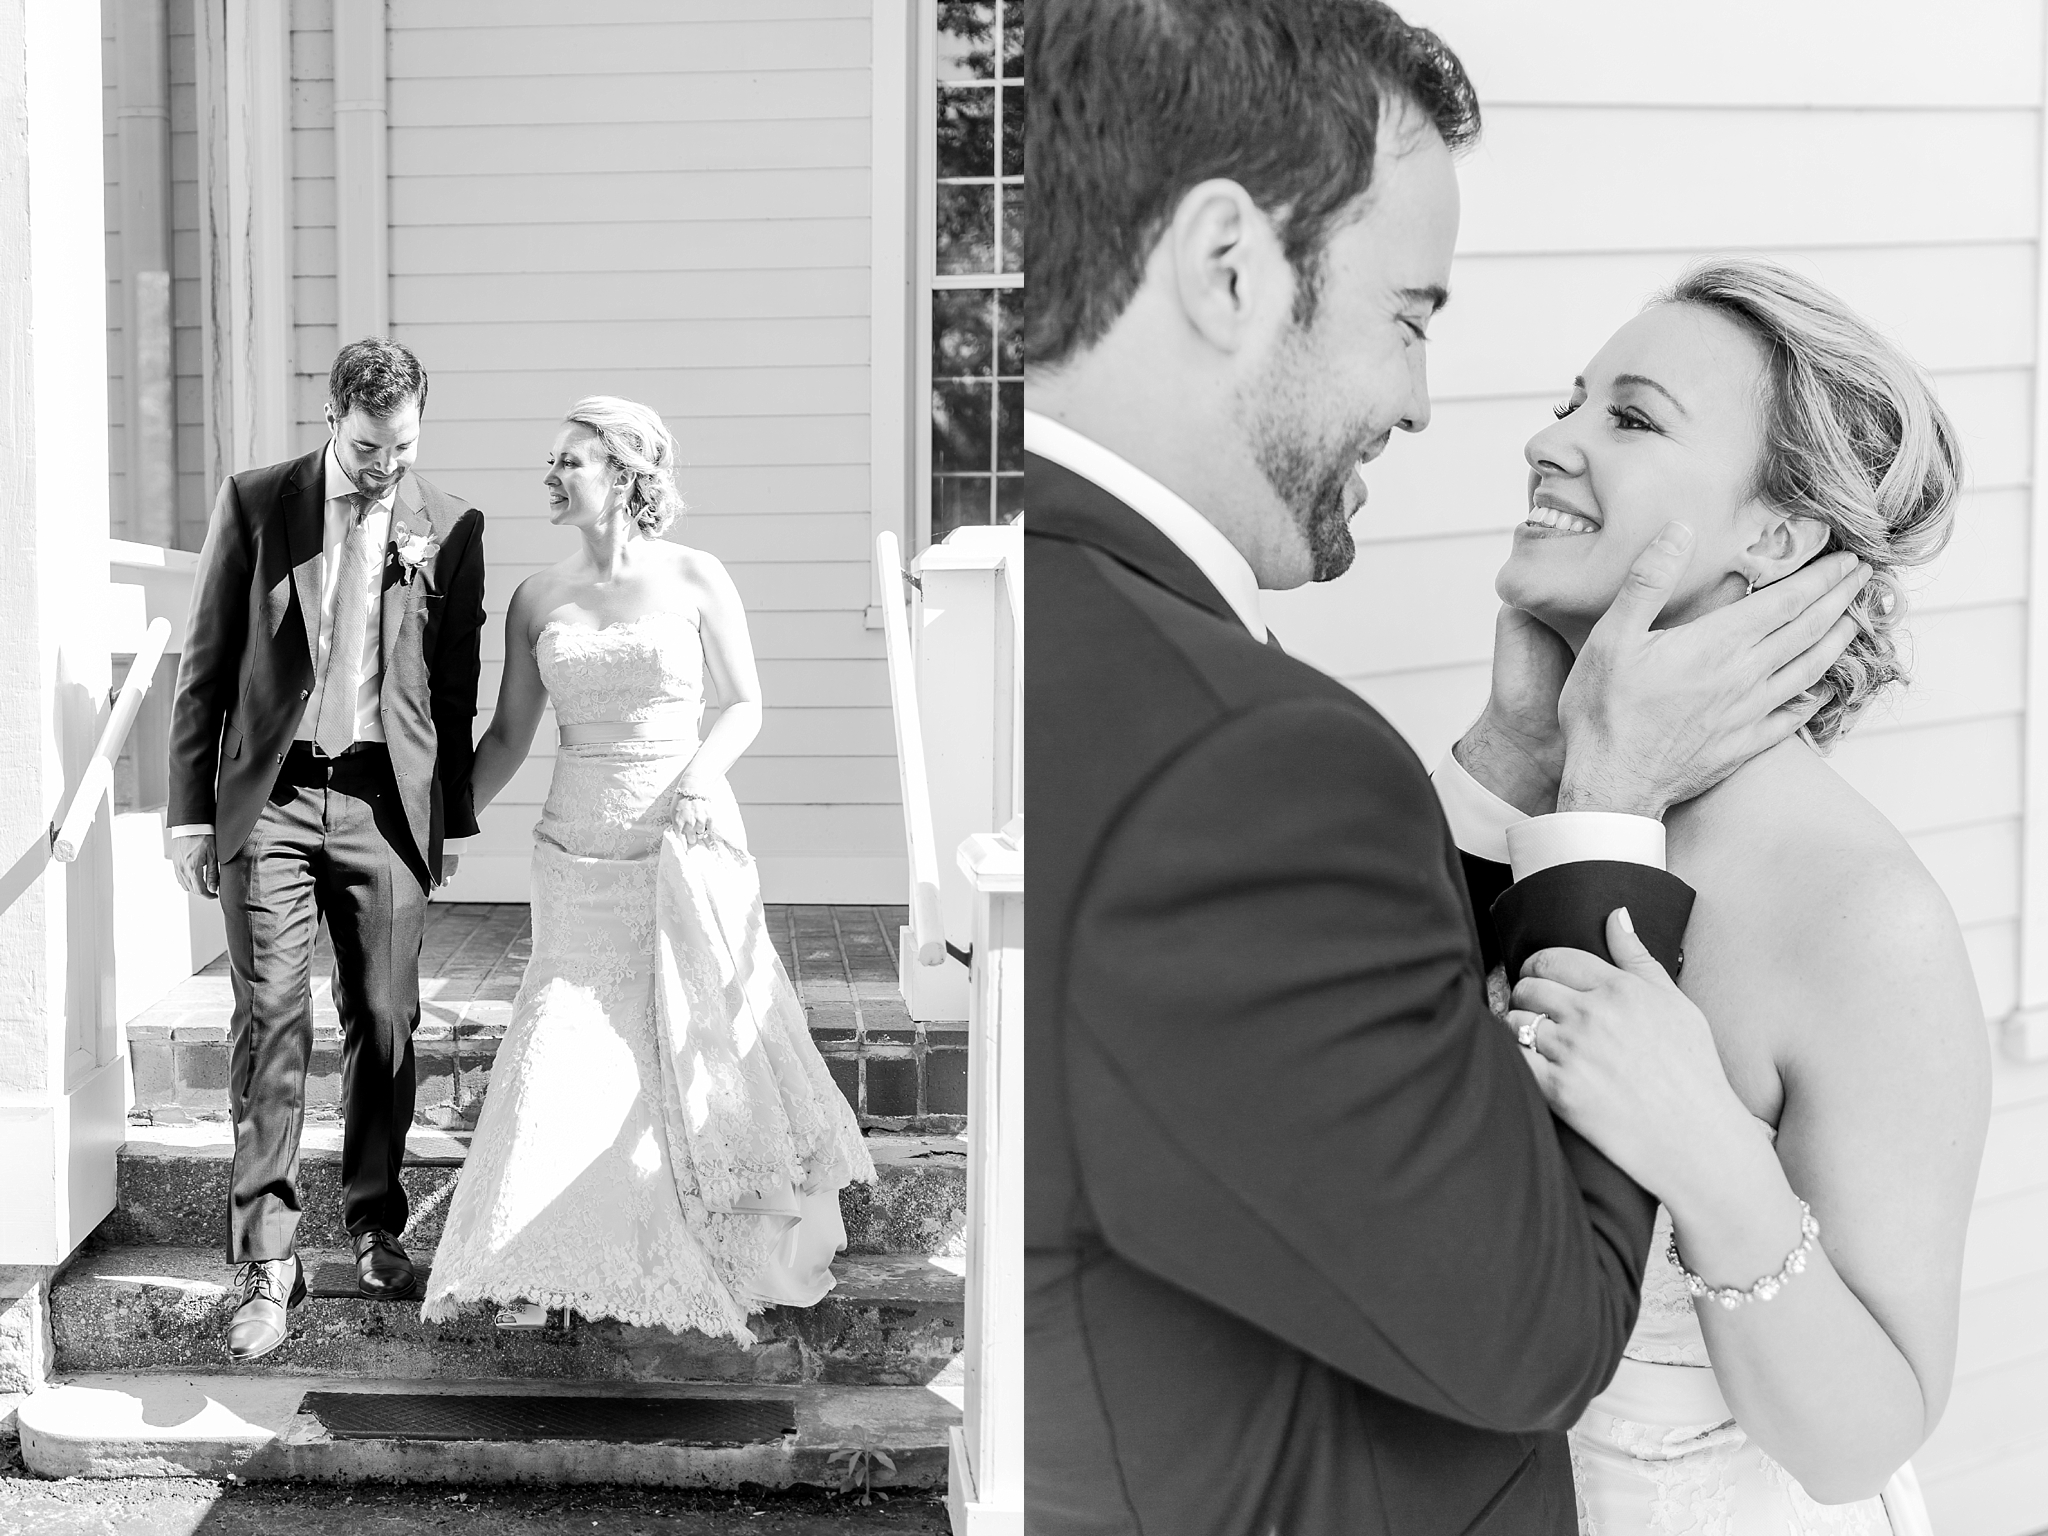 fun-candid-laid-back-wedding-photos-at-wellers-carriage-house-in-saline-michigan-and-at-the-eagle-crest-golf-resort-by-courtney-carolyn-photography_0039.jpg